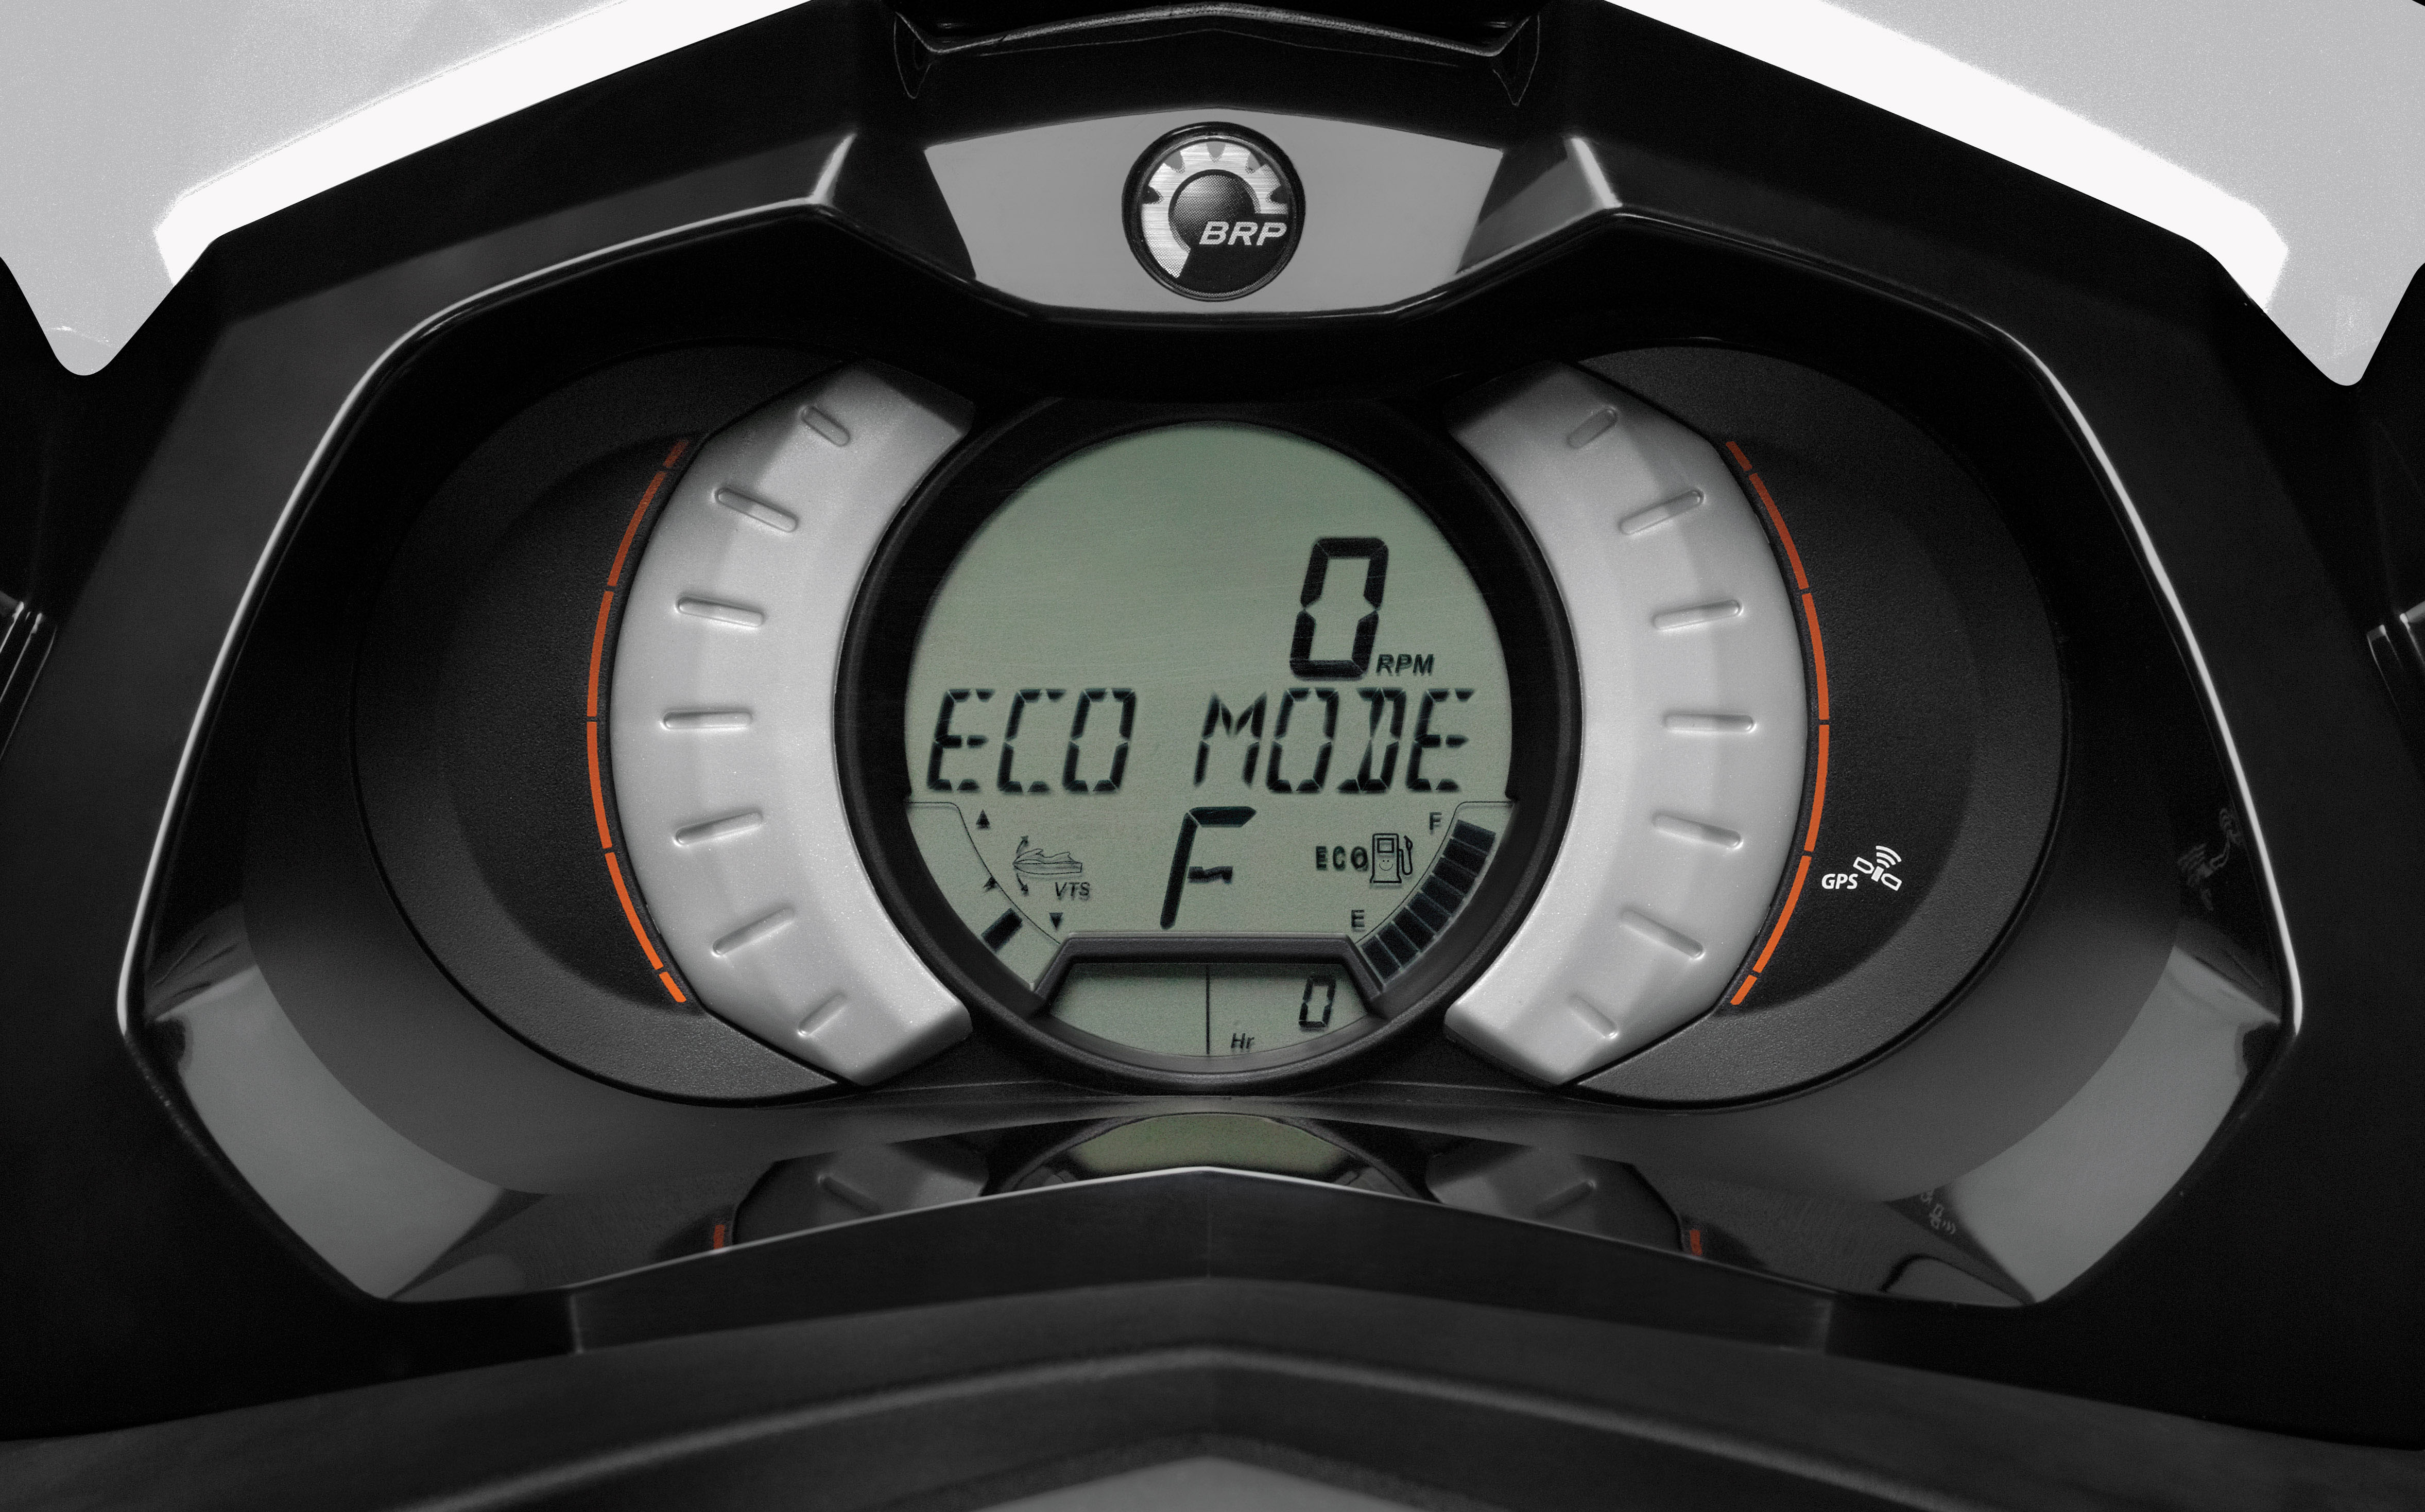 WELCOME TO THE WATER: Basic Tips for New Sea-Doo Owners